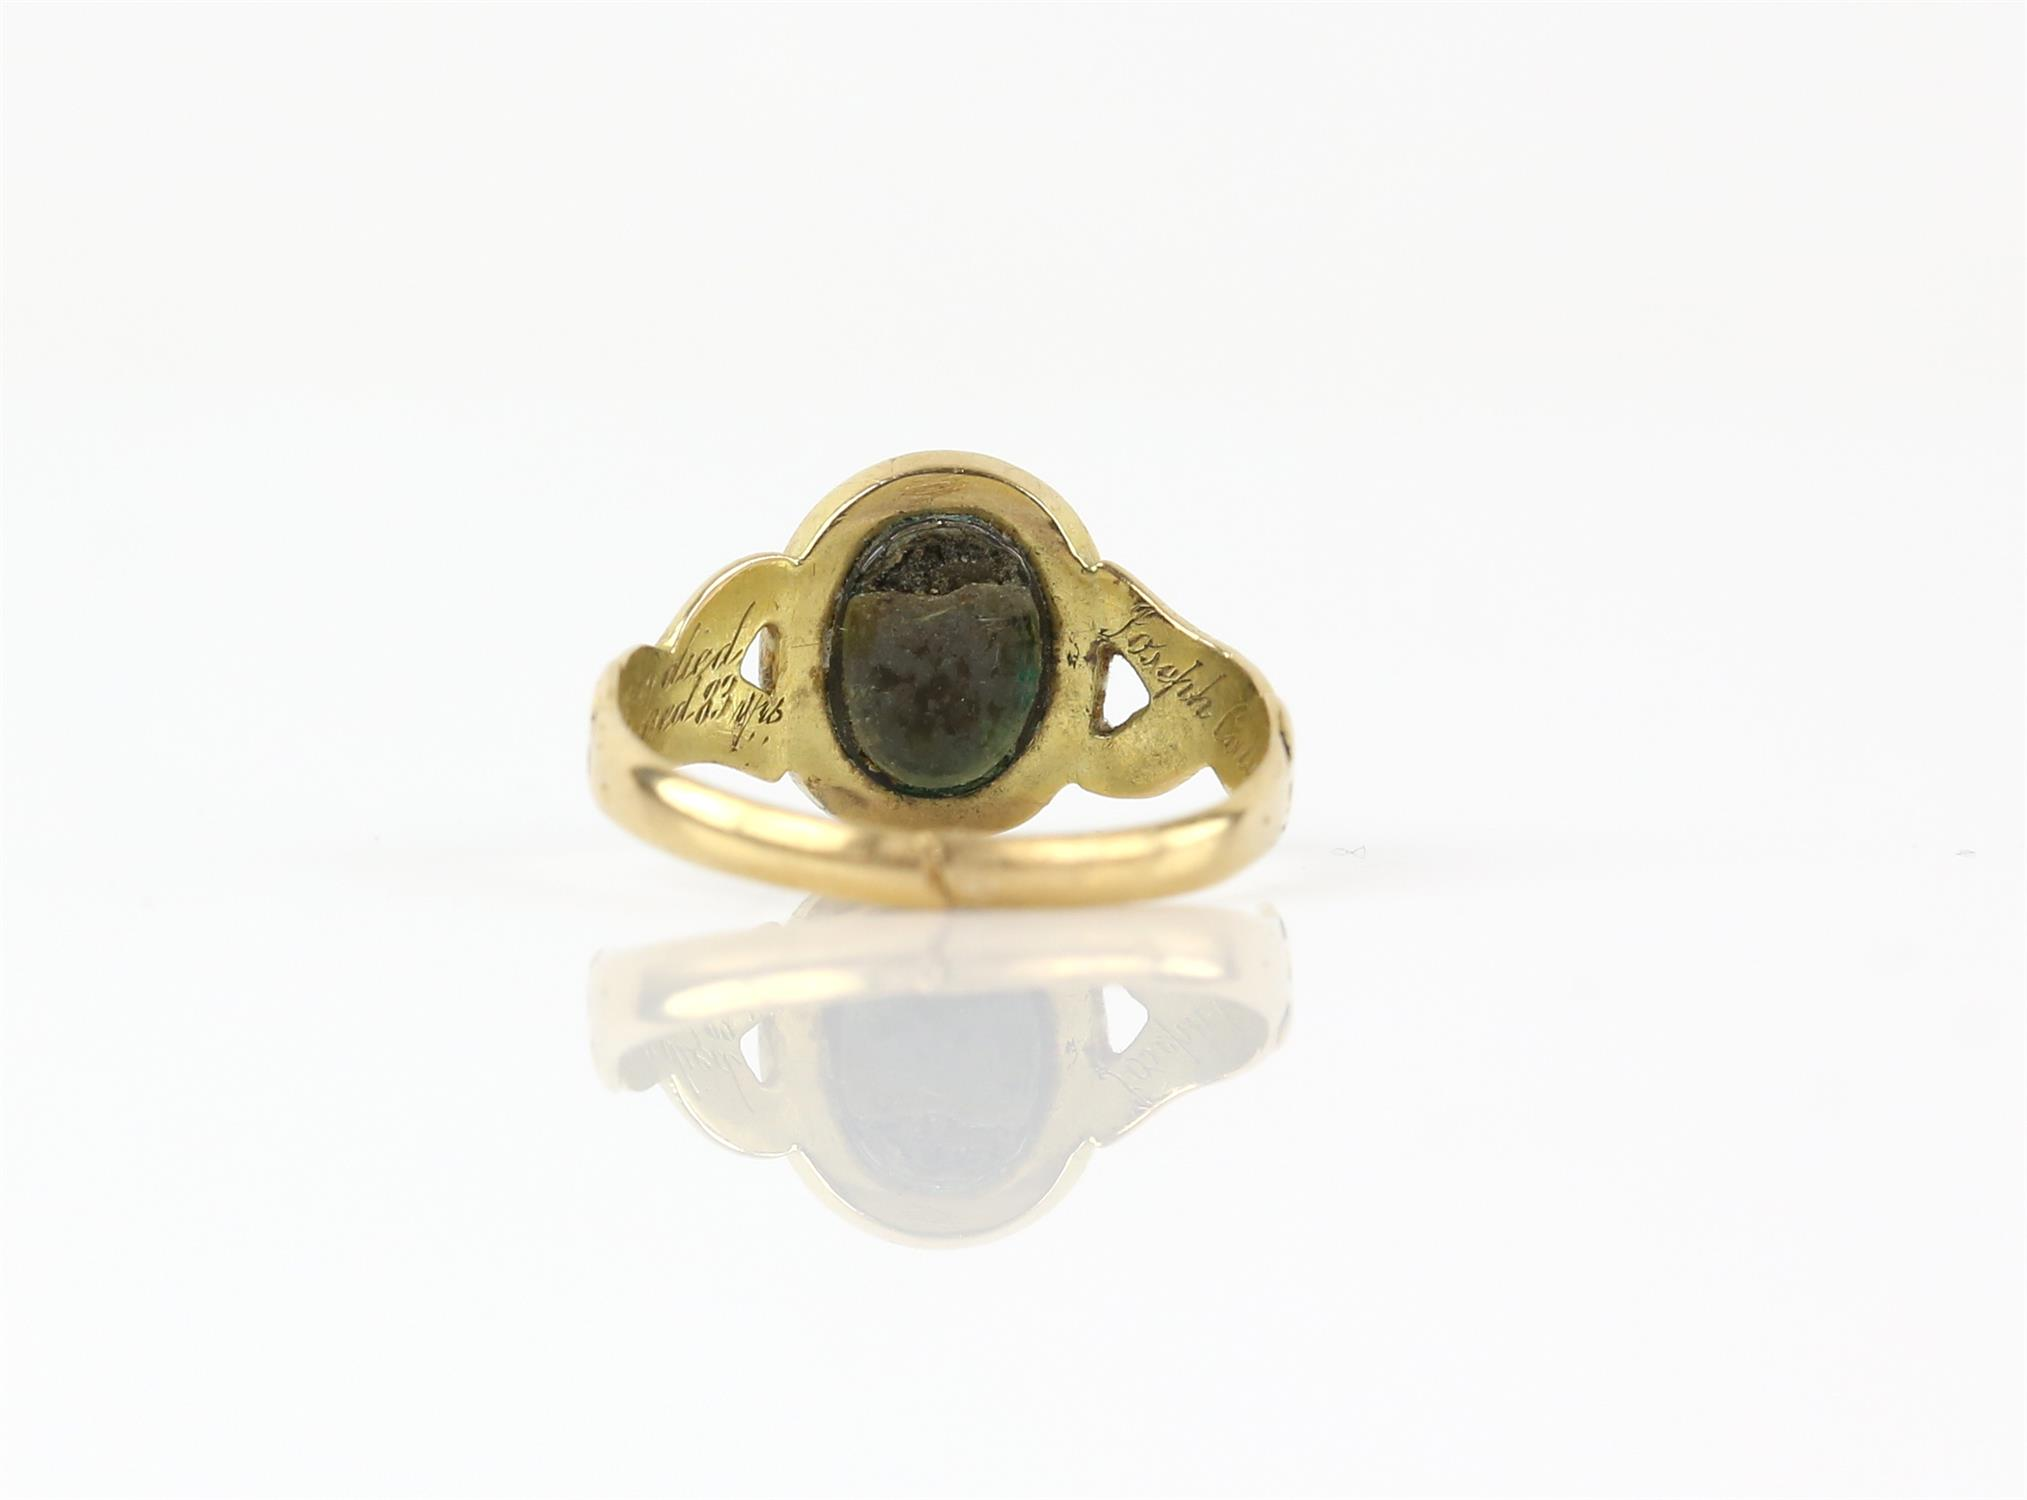 Antique gold and enamel mourning ring, inside band engraved 'Joseph Callaway died Feb 4.1873. - Image 3 of 3